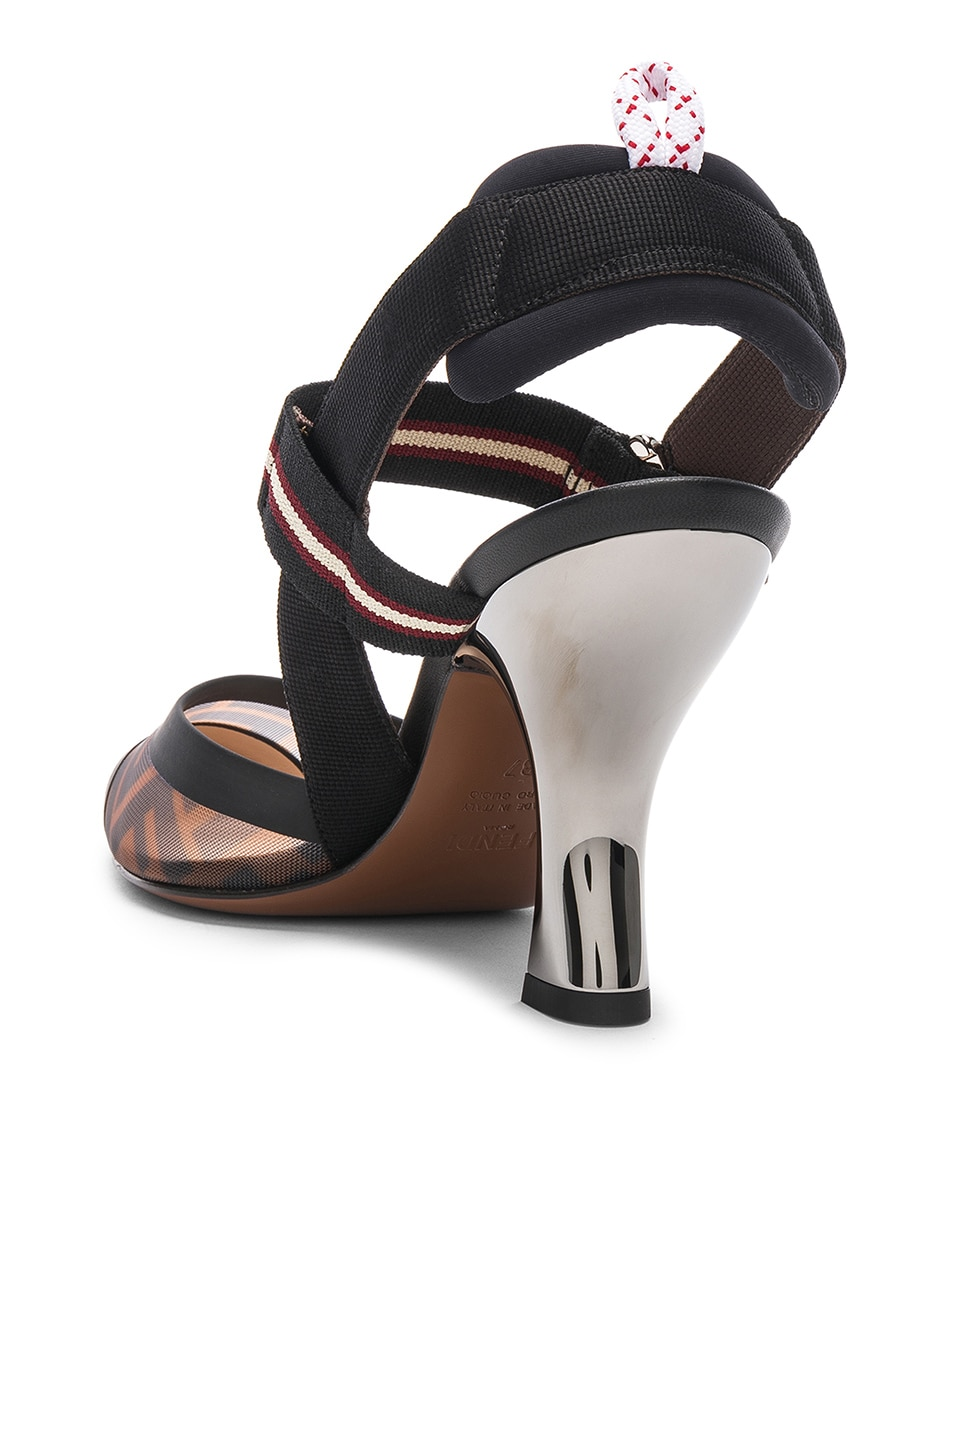 Image 3 of Fendi Colibri Slingback Heels in Black